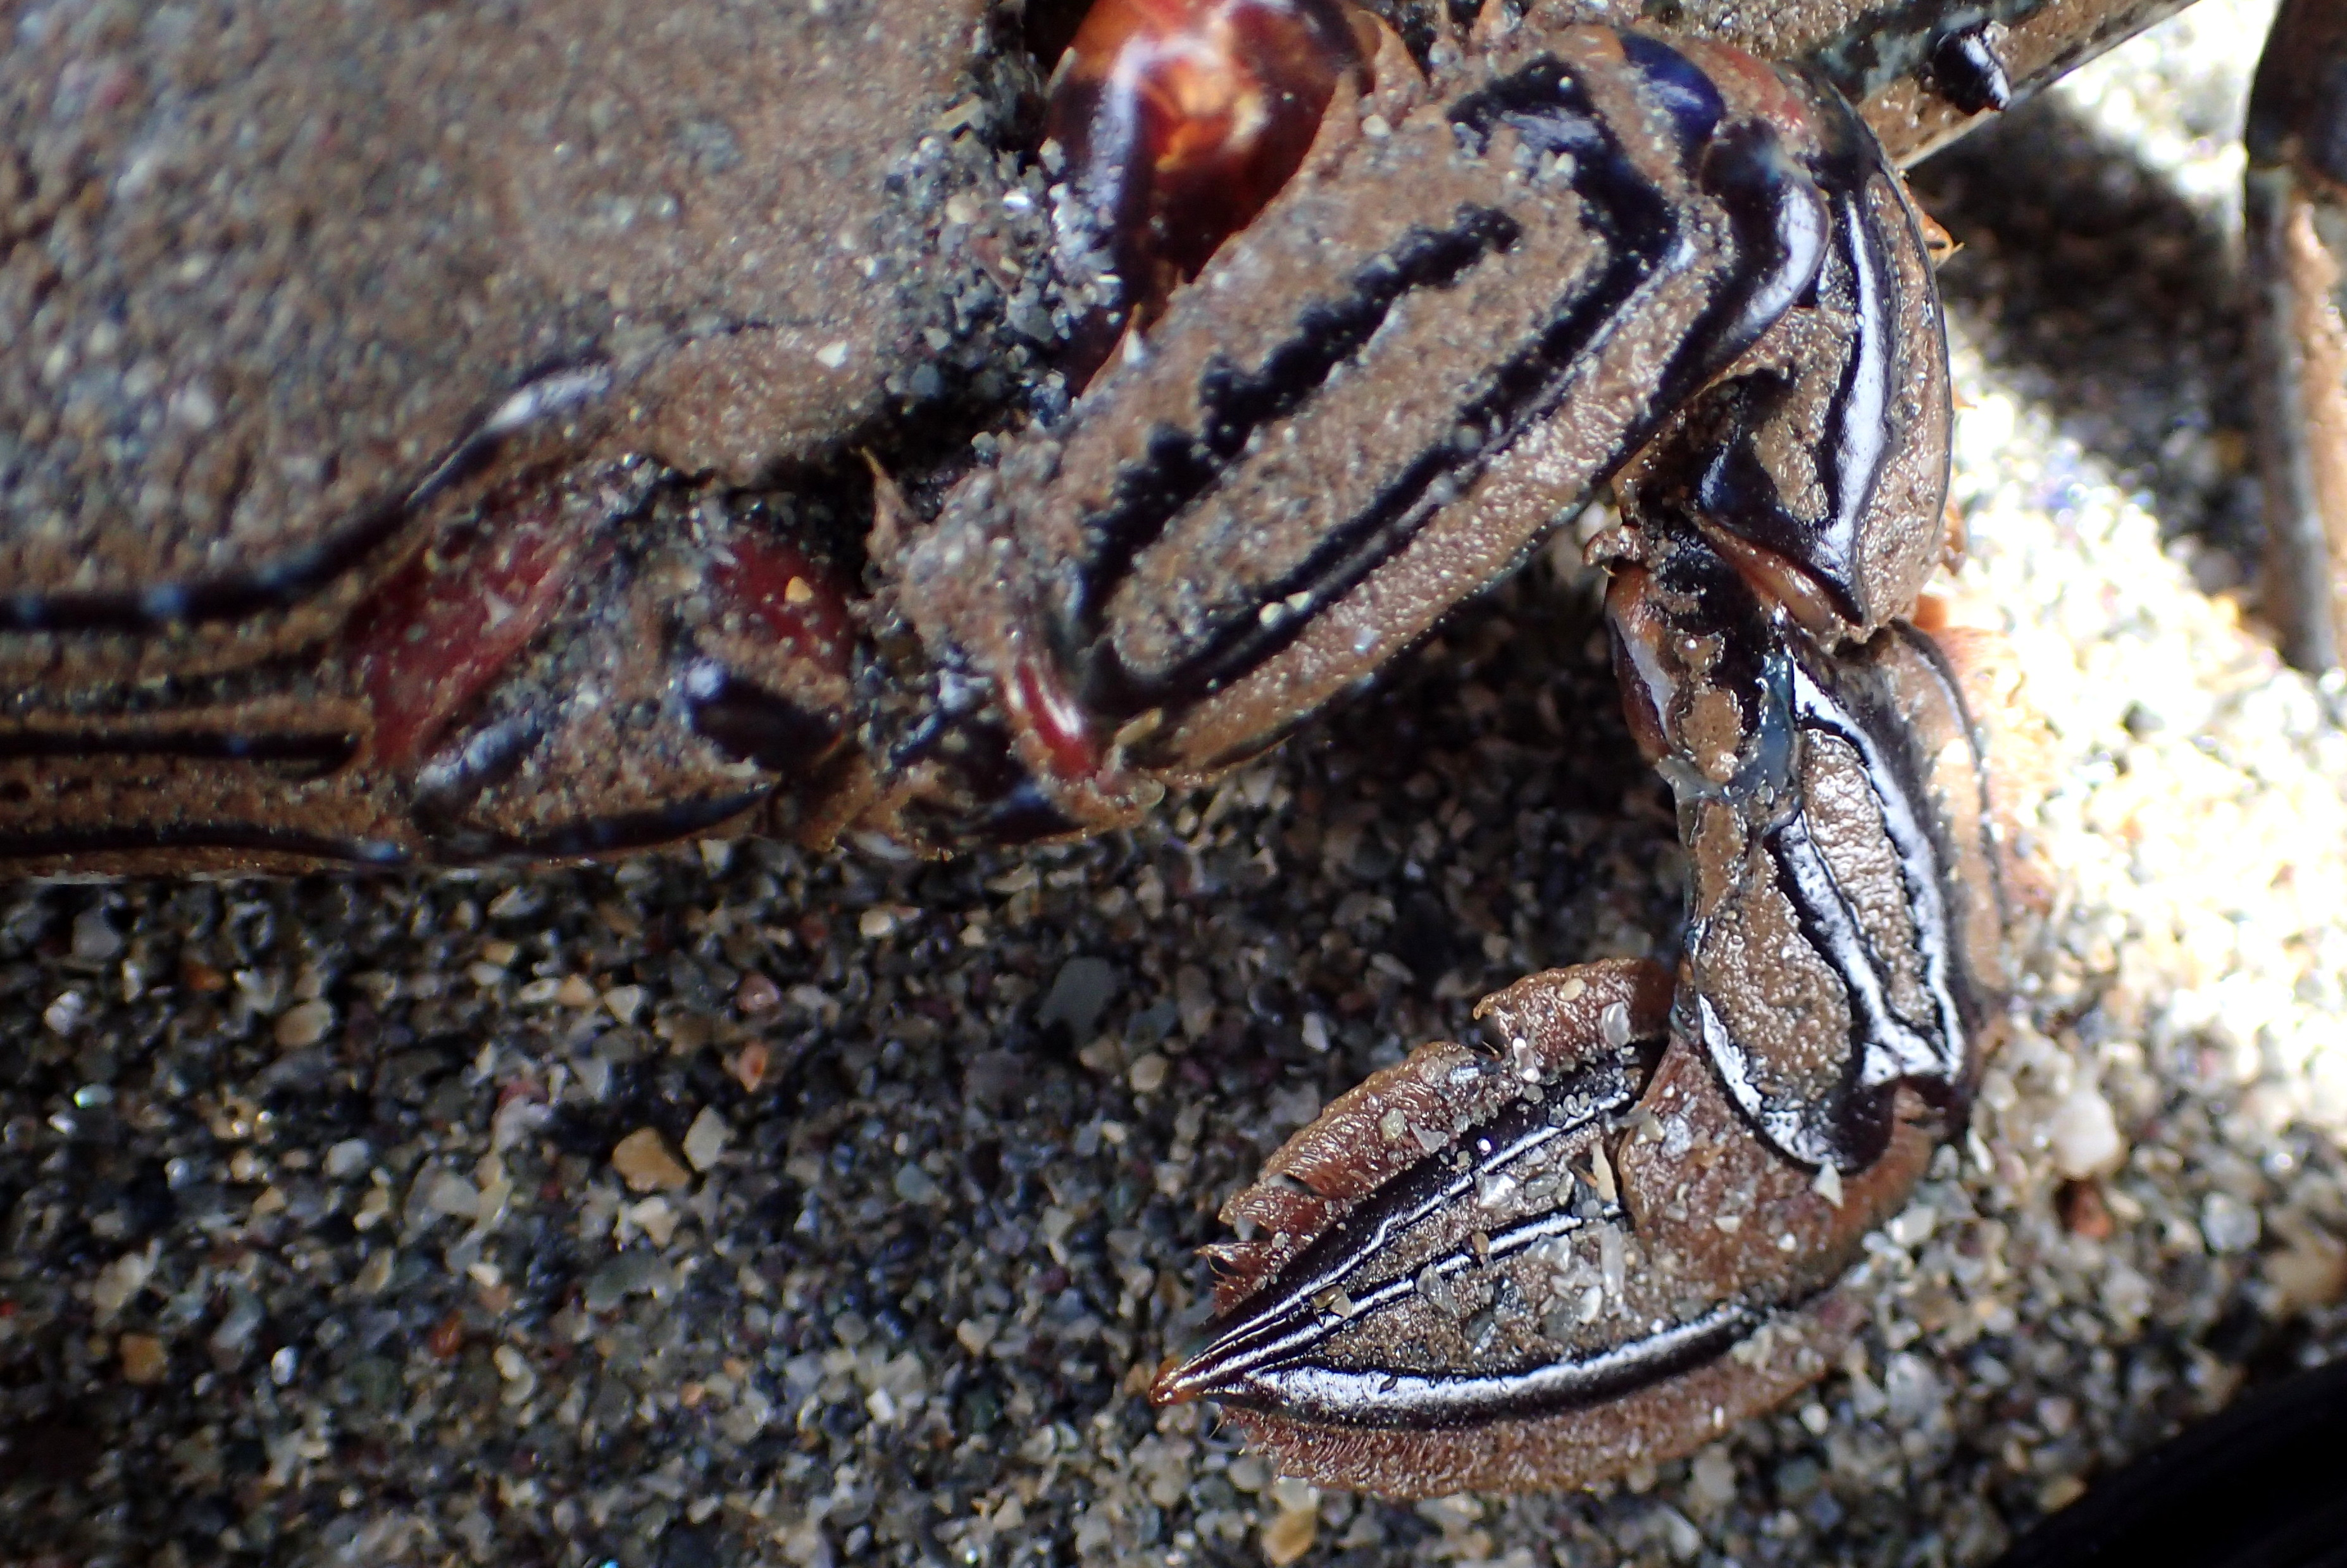 The flattened back legs of the Velvet swimming crab make them fast and powerful swimmers.